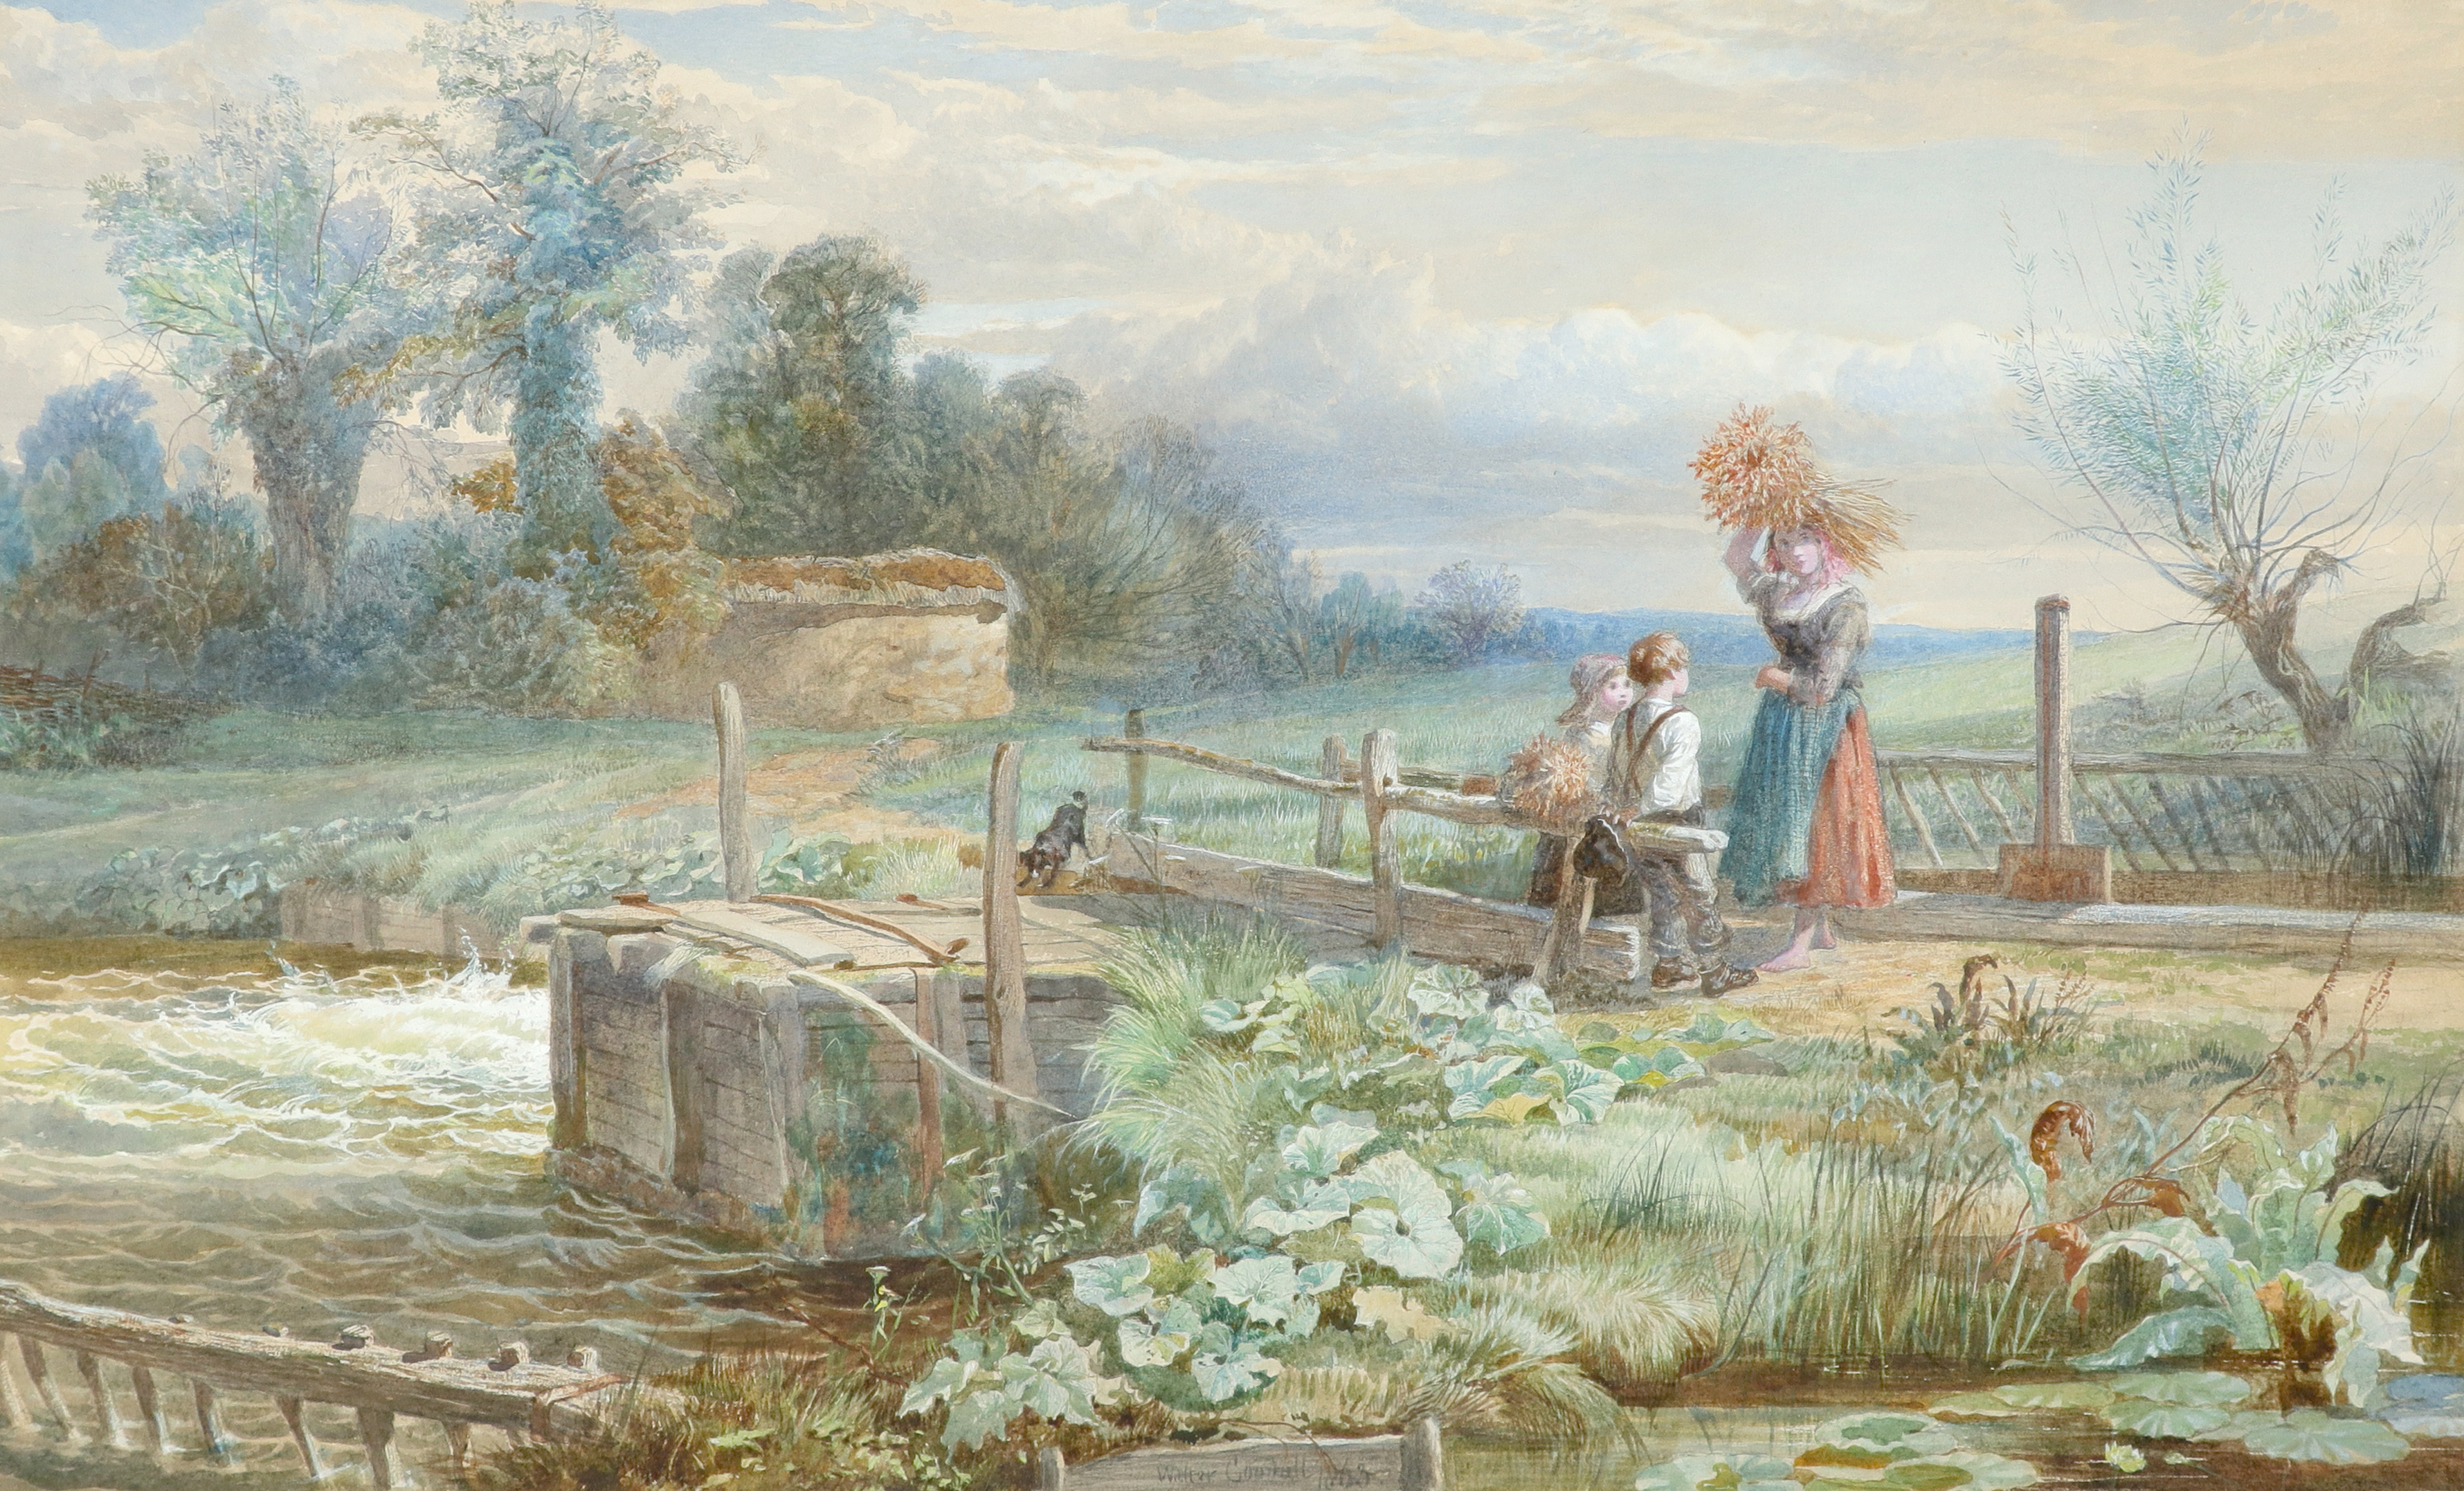 Walter Goodall (1830-1889) The little gleaners Signed and dated Walter Goodall 1863 (lower centre)